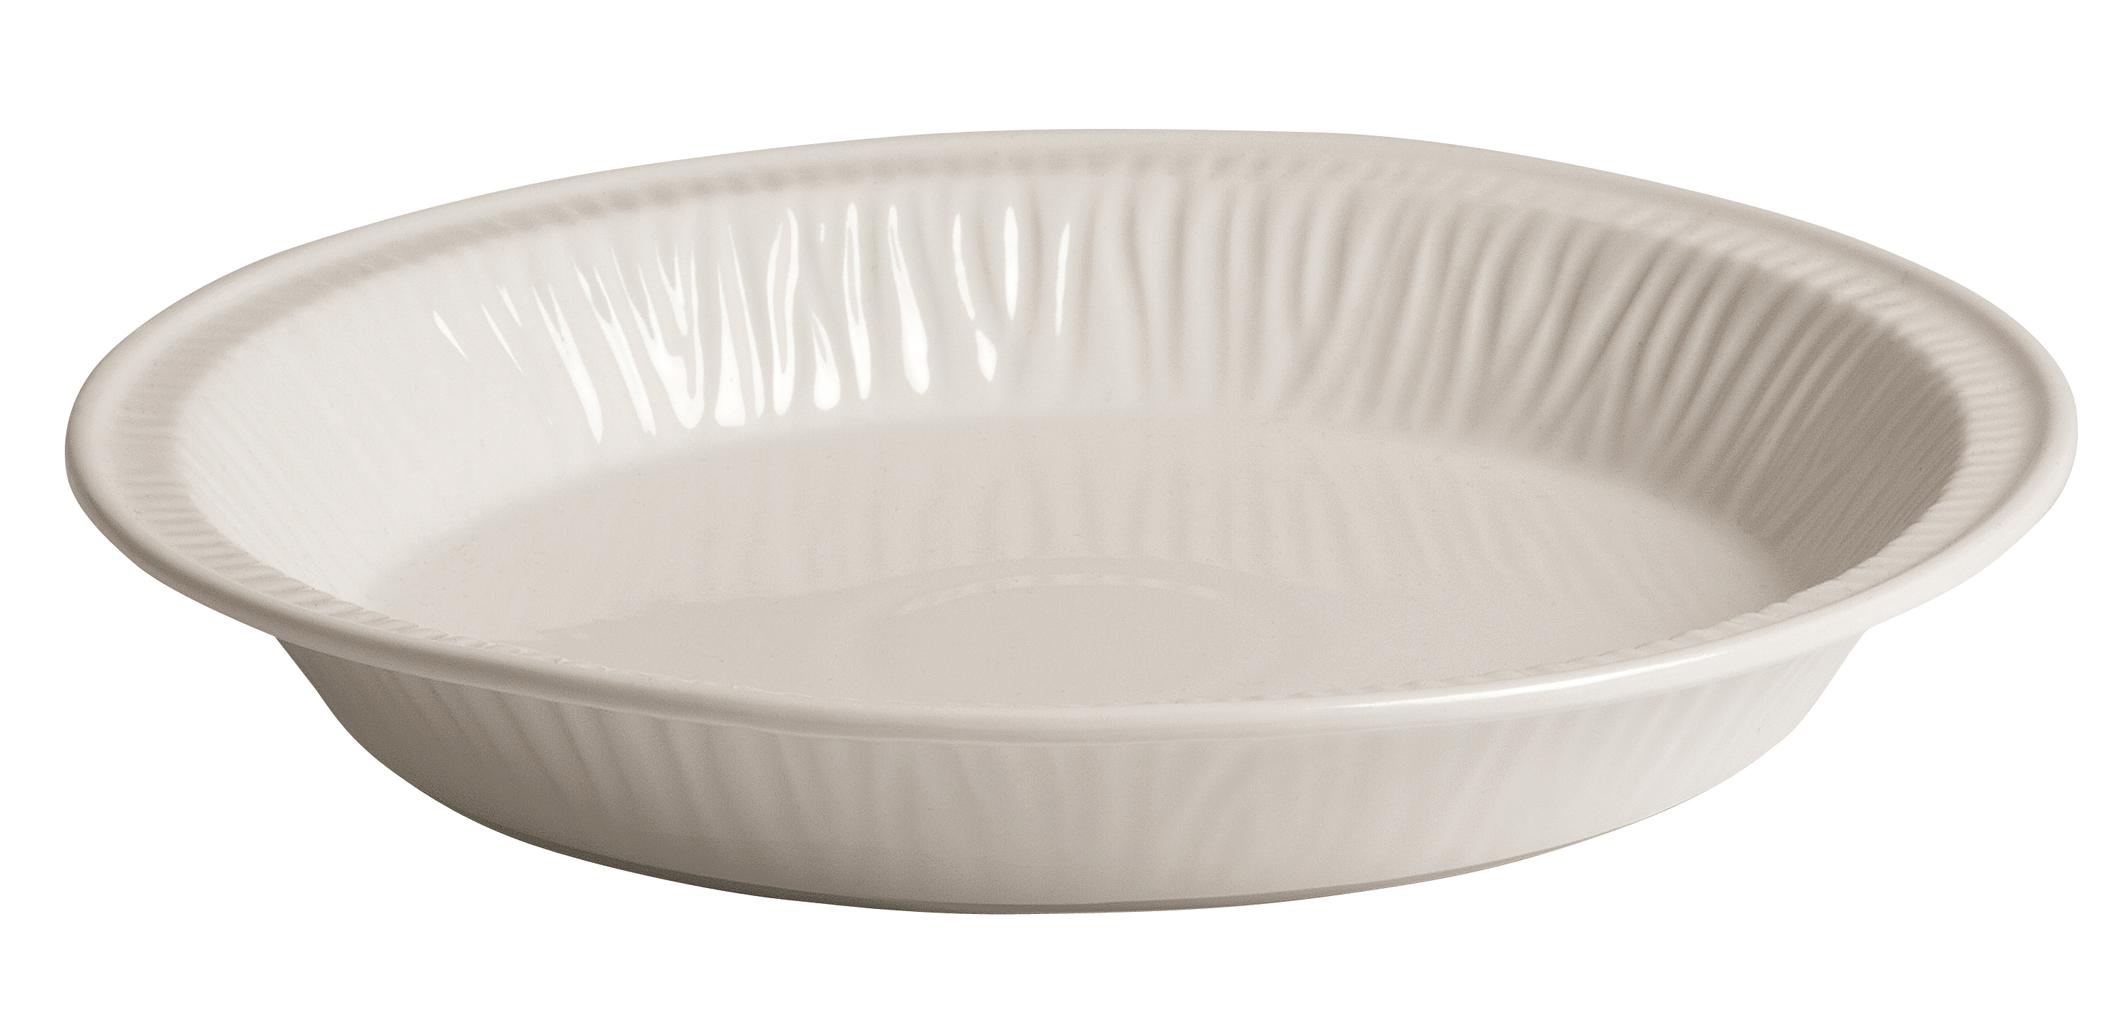 THE SALAD PLATE